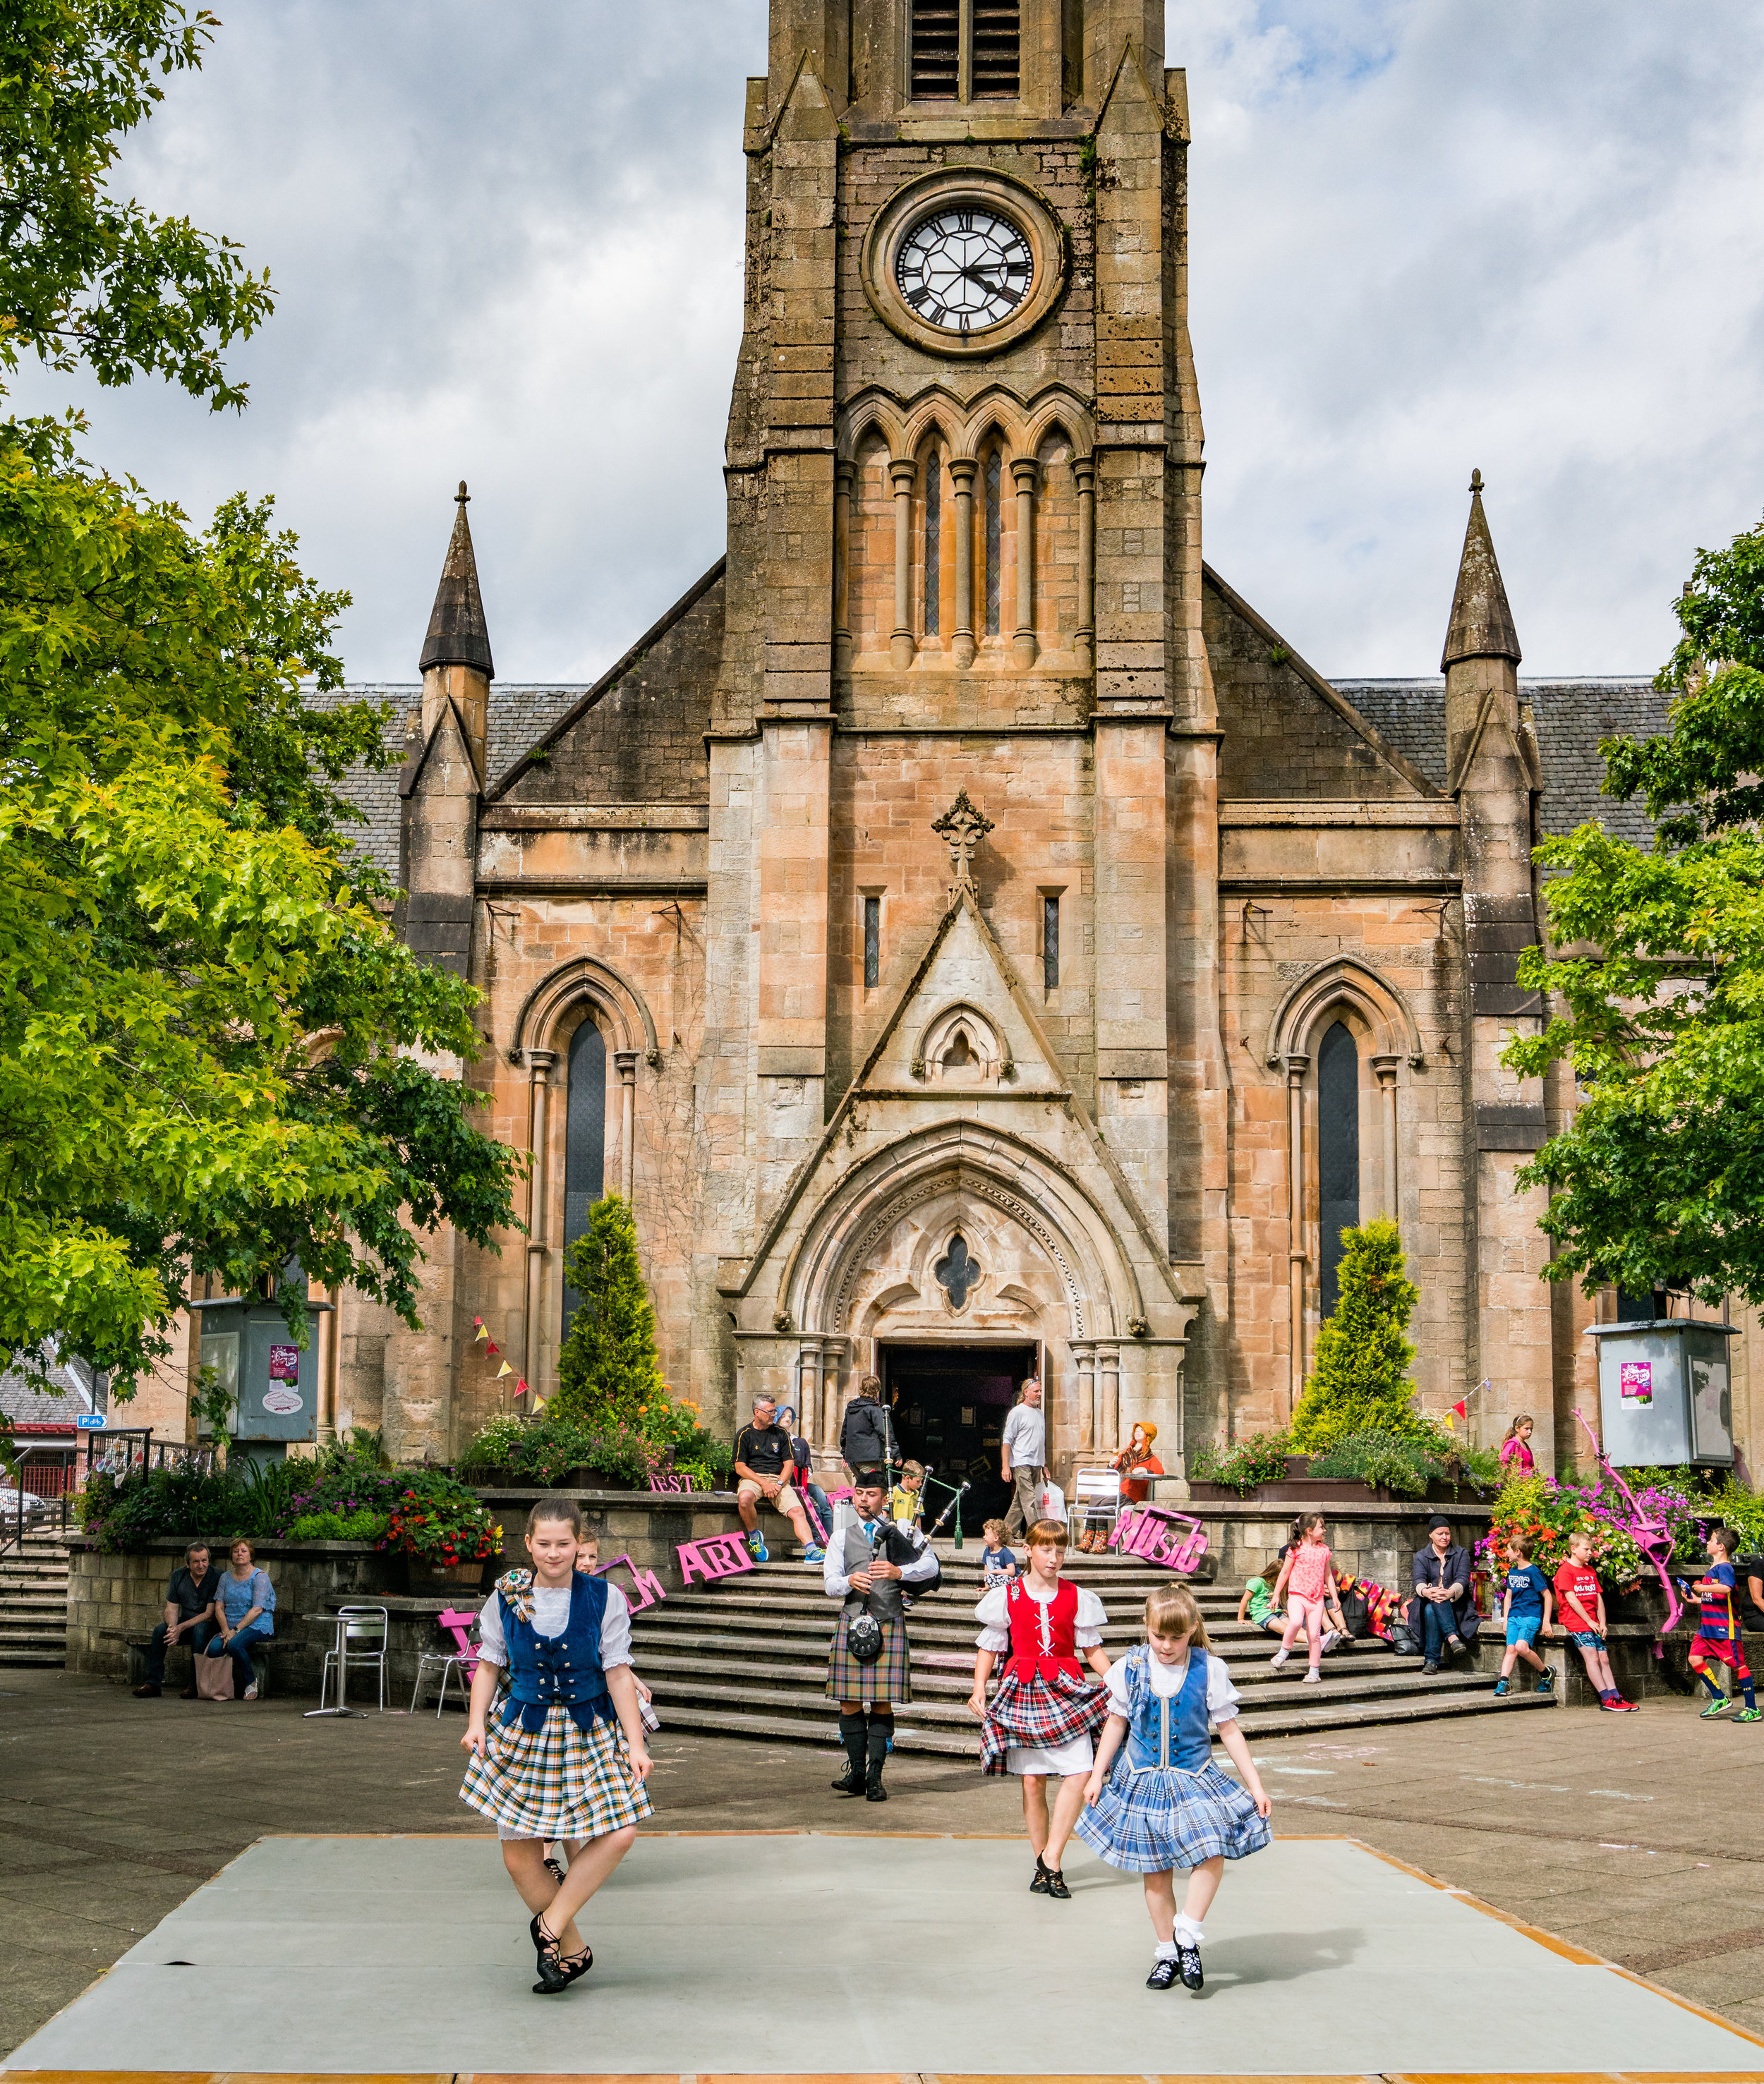 The dancing happened in front of St. Kessog's Church